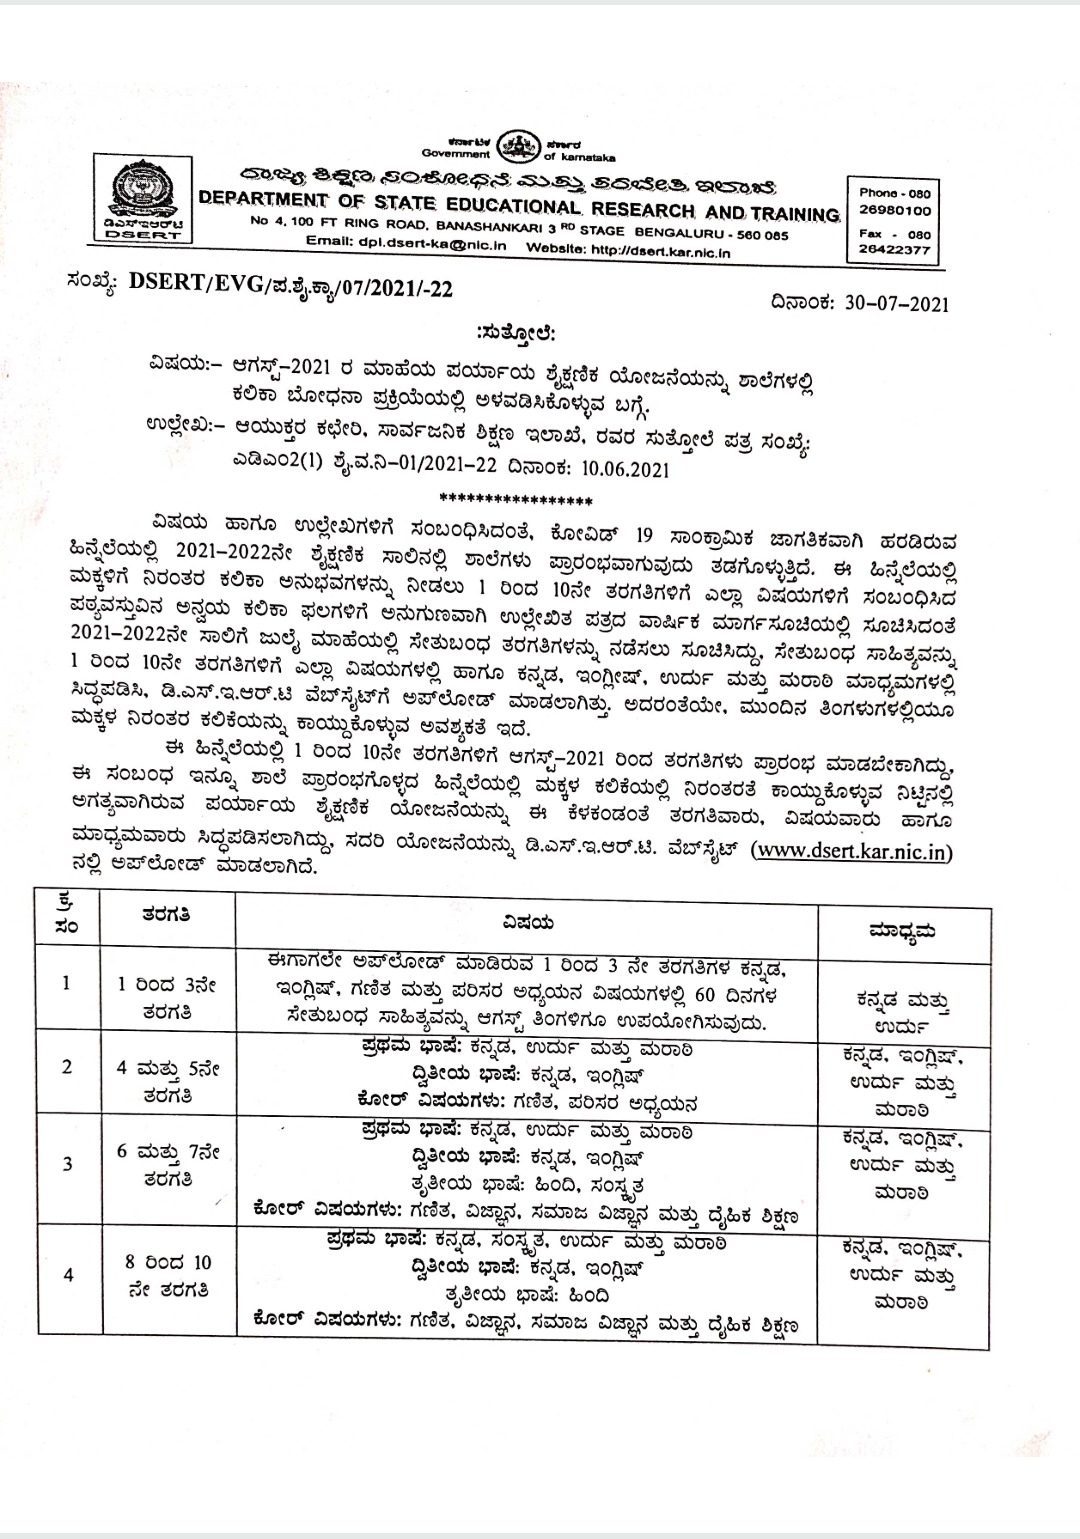 Aug-21: MAHE's Alternative Education Scheme for Engaging in the Learning Teaching Process